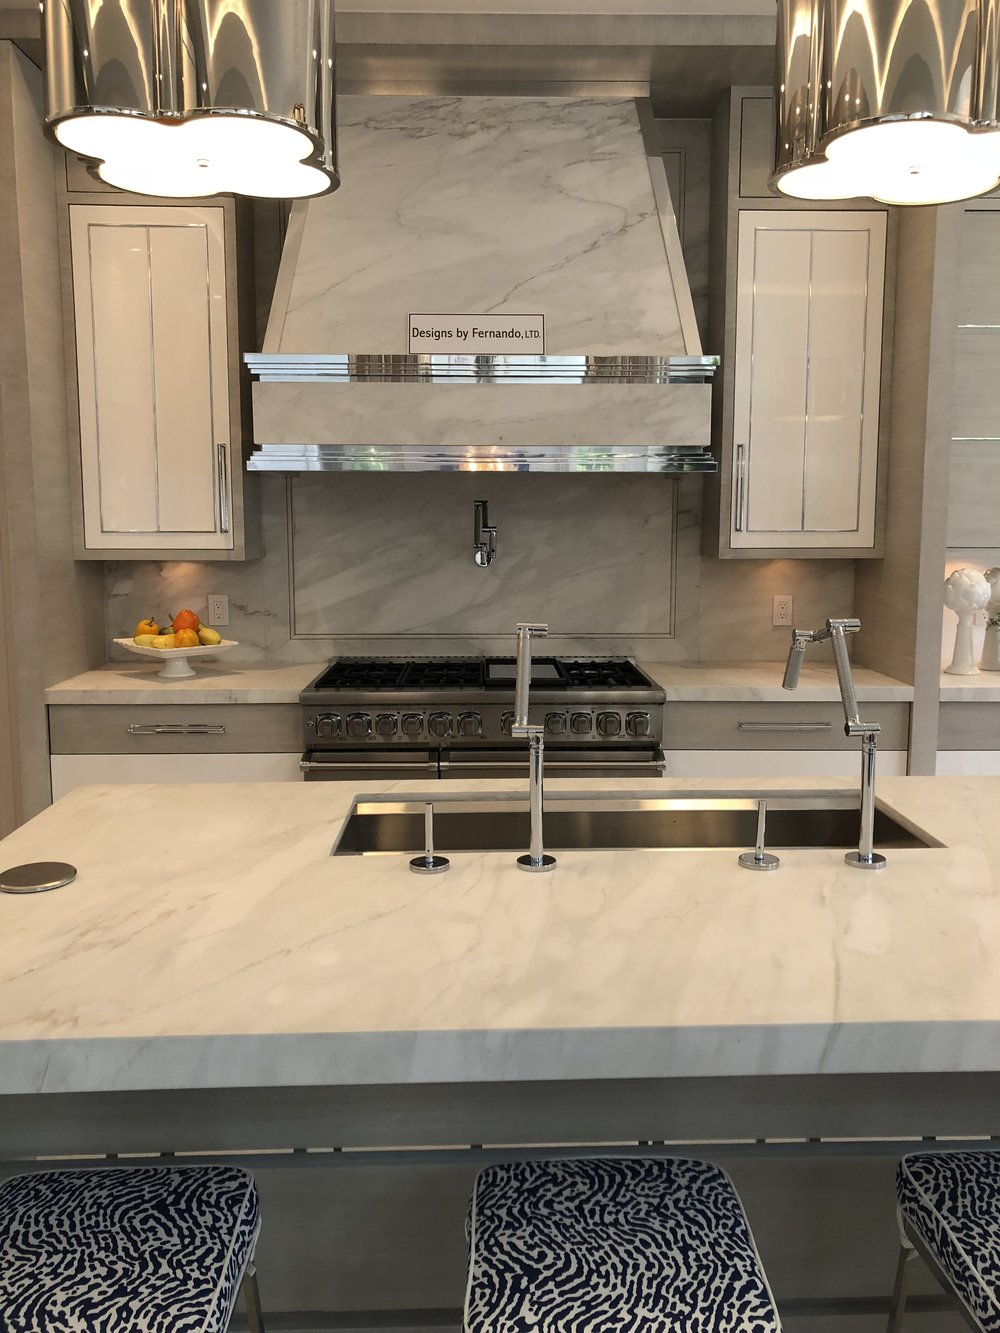 Kitchens By Fernando.jpg